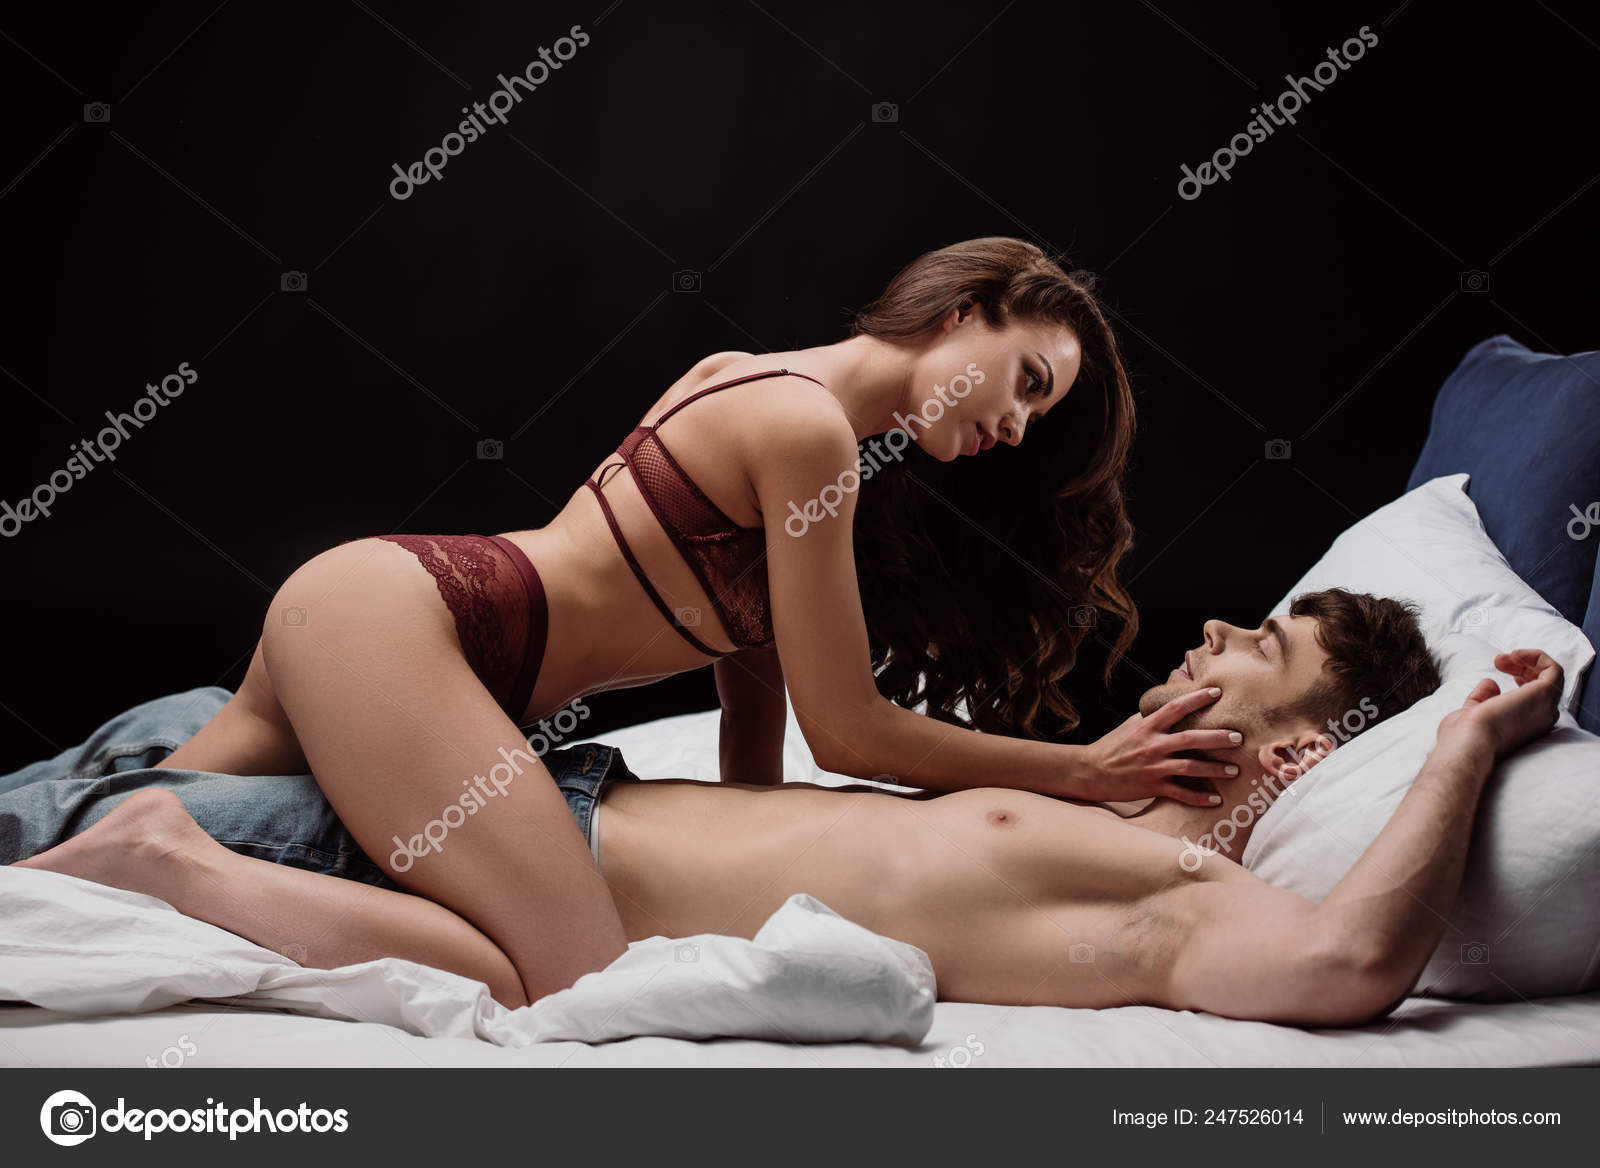 Sexy pictures of men touching women